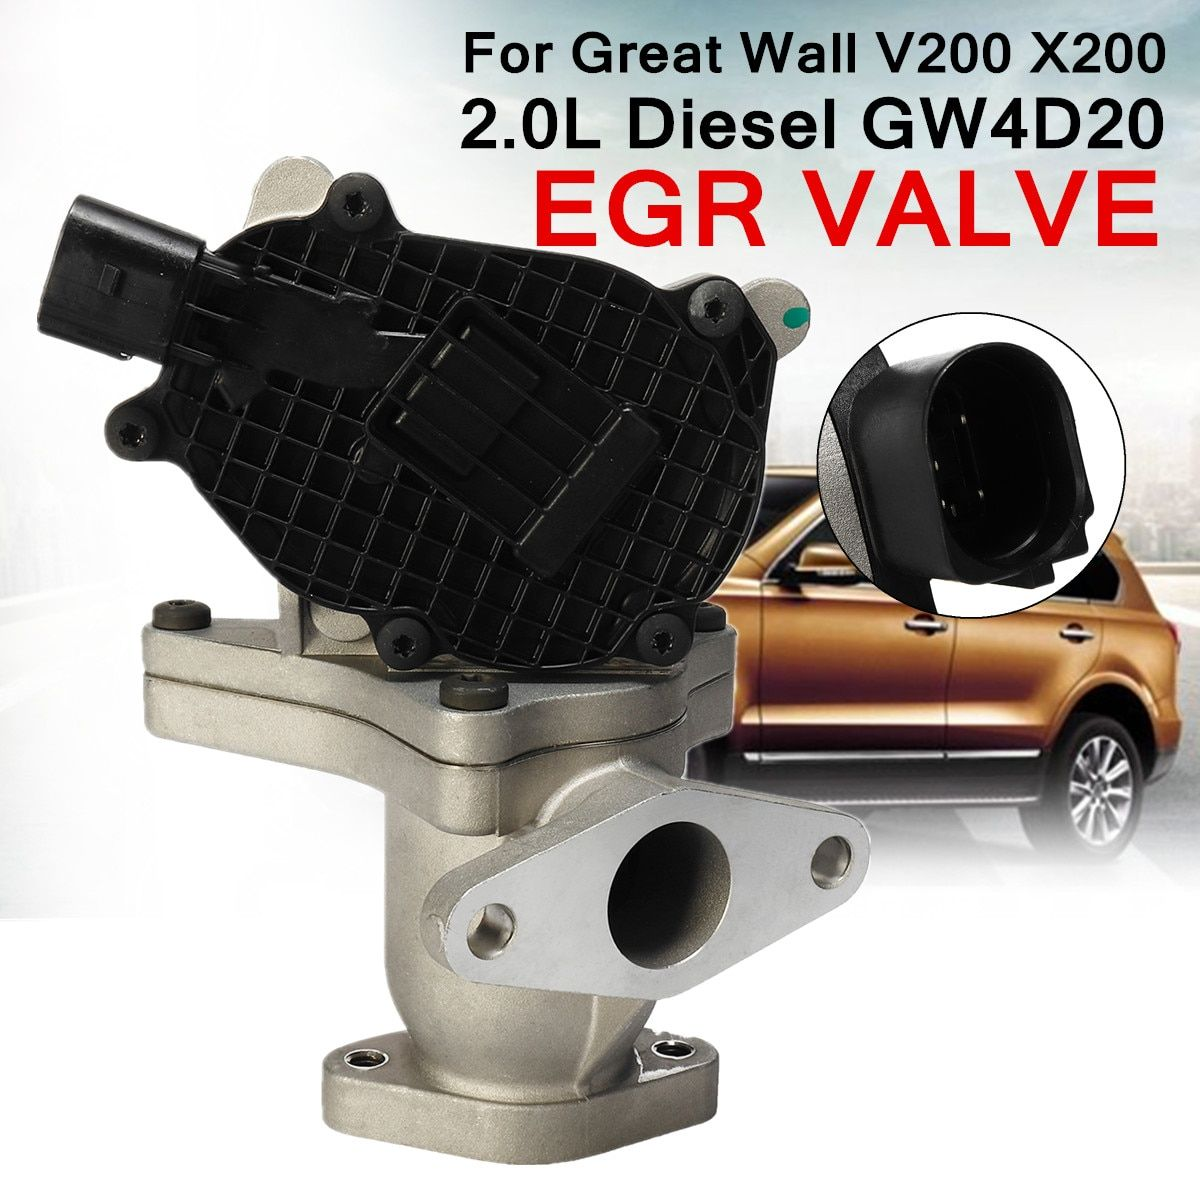 EGR Exhaust Gas Valve for Great Wall 1207100-ED01A V200 X200 2.0L for Diesel GW4D20 Recirculation Valve Reduce Temperature NOx